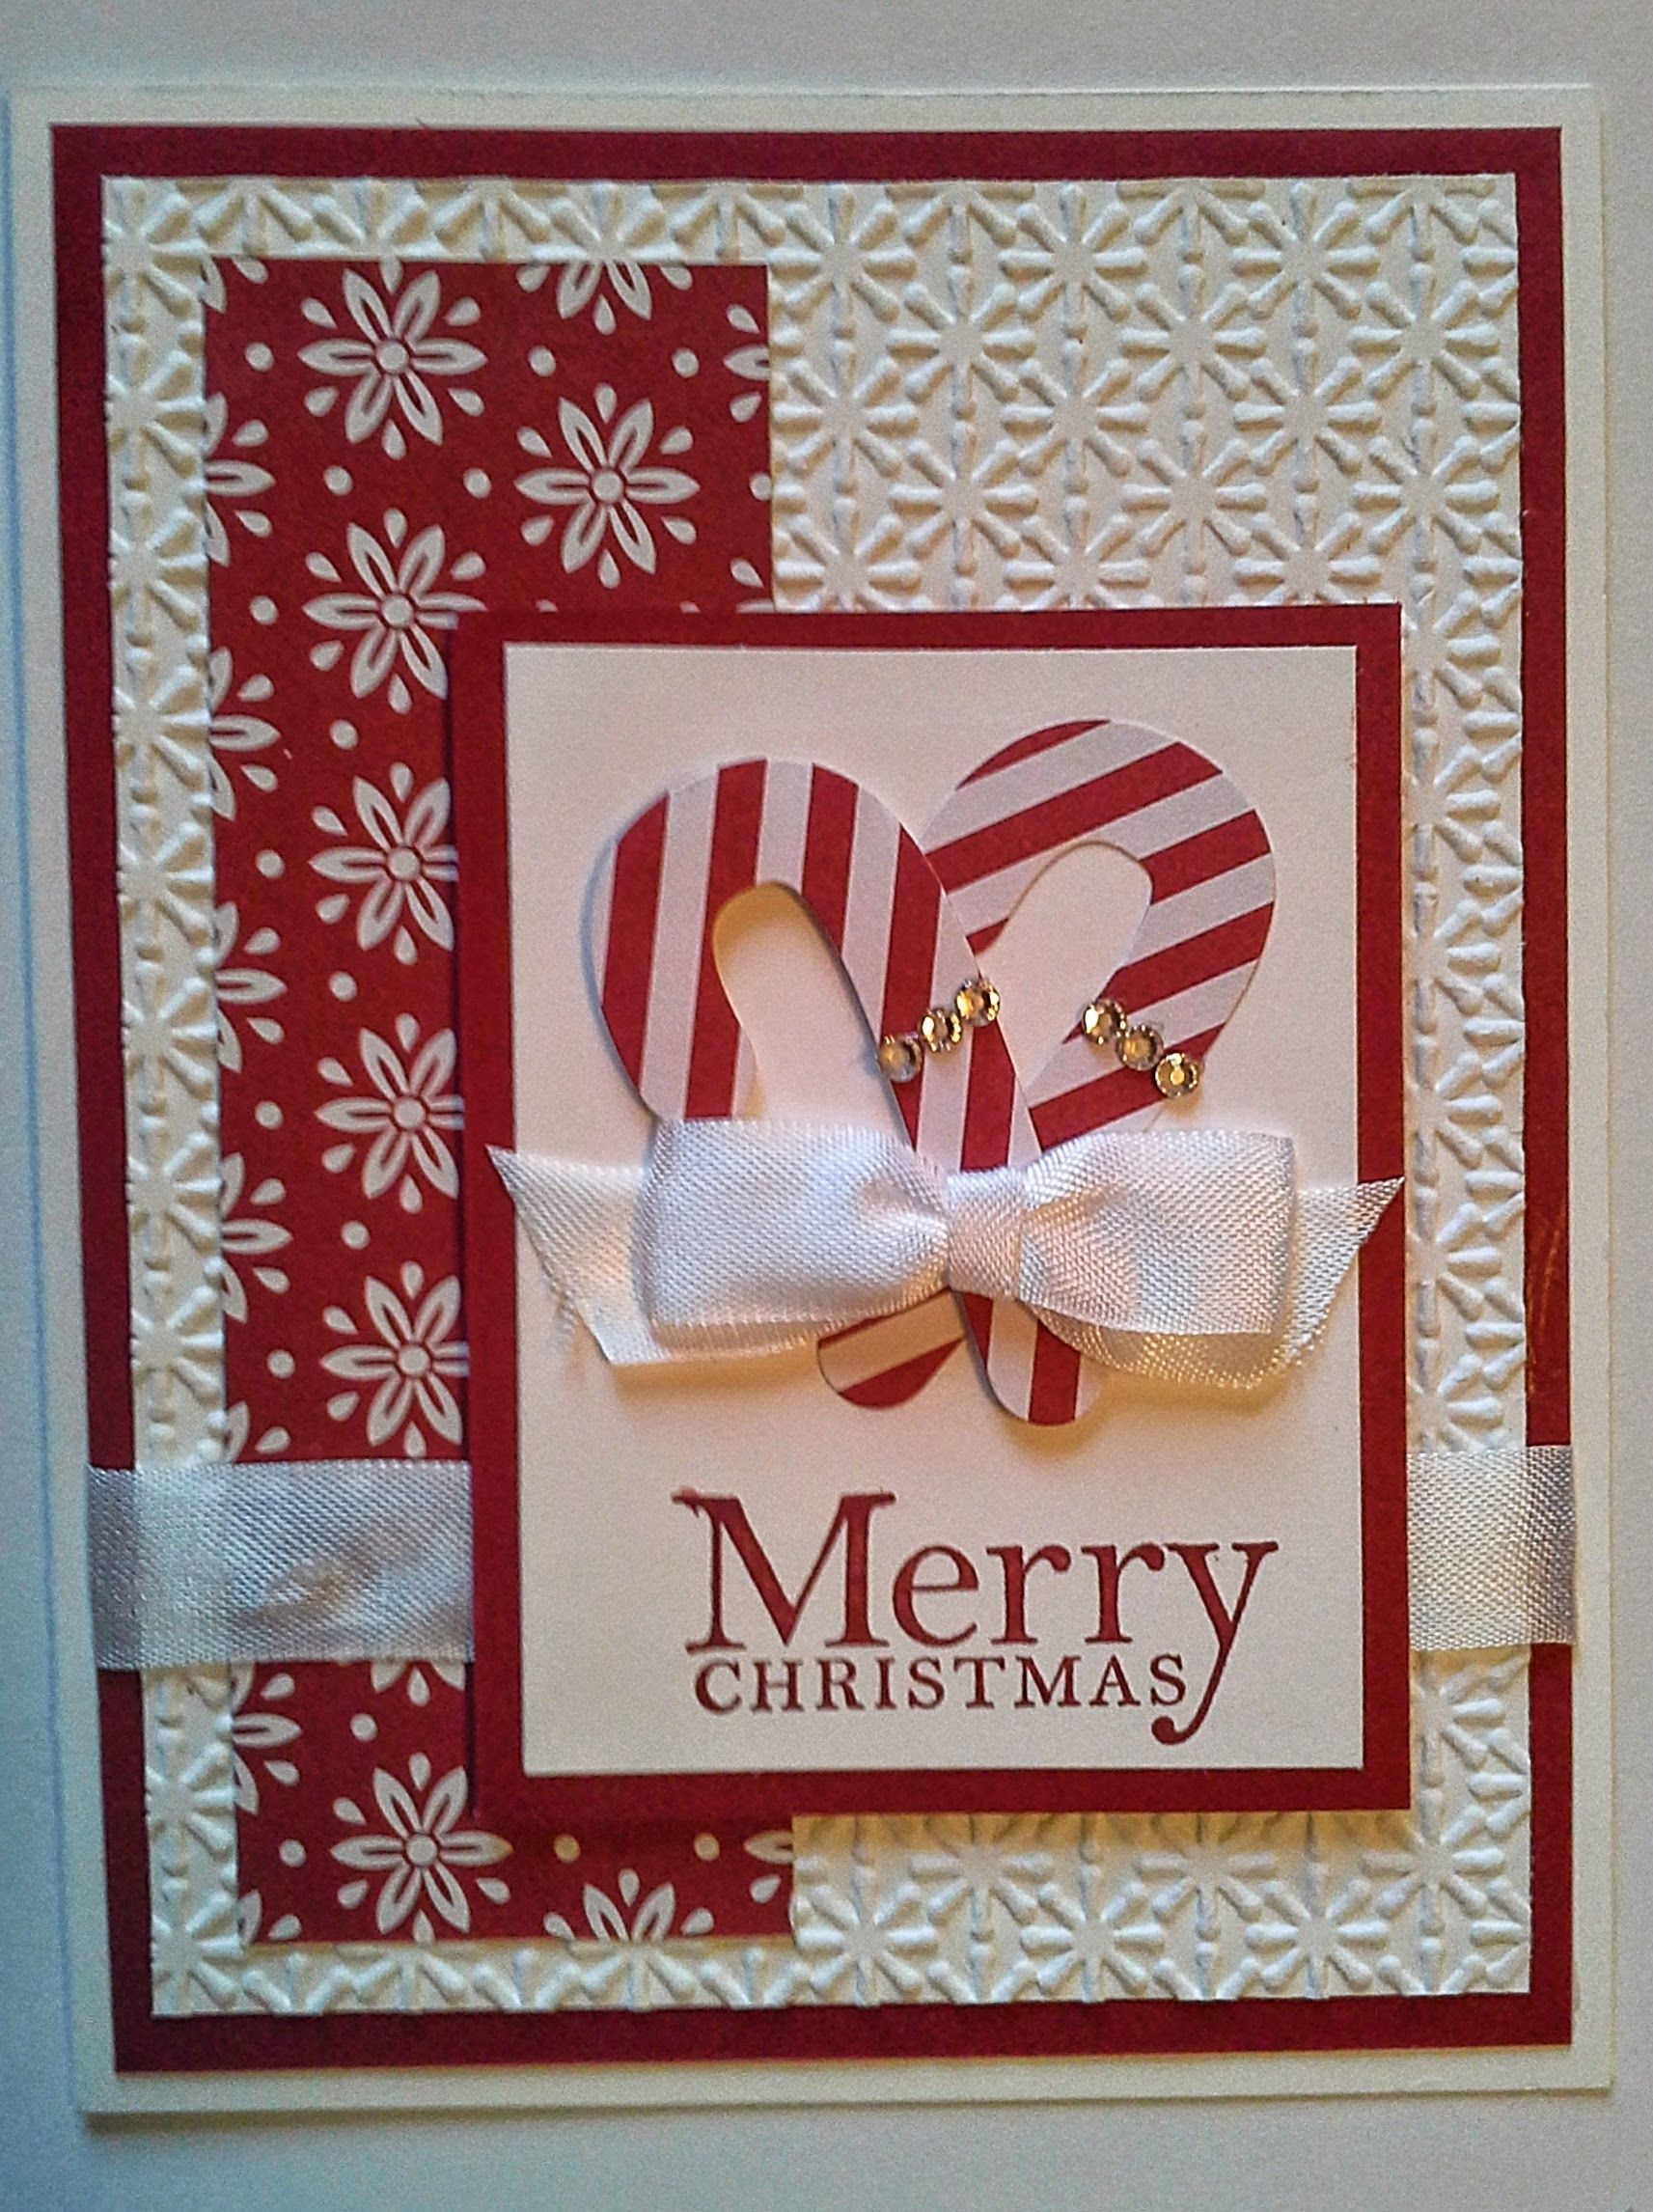 Classy cut ups creations christmas cards stampin up only classy cut ups creations christmas cards m4hsunfo